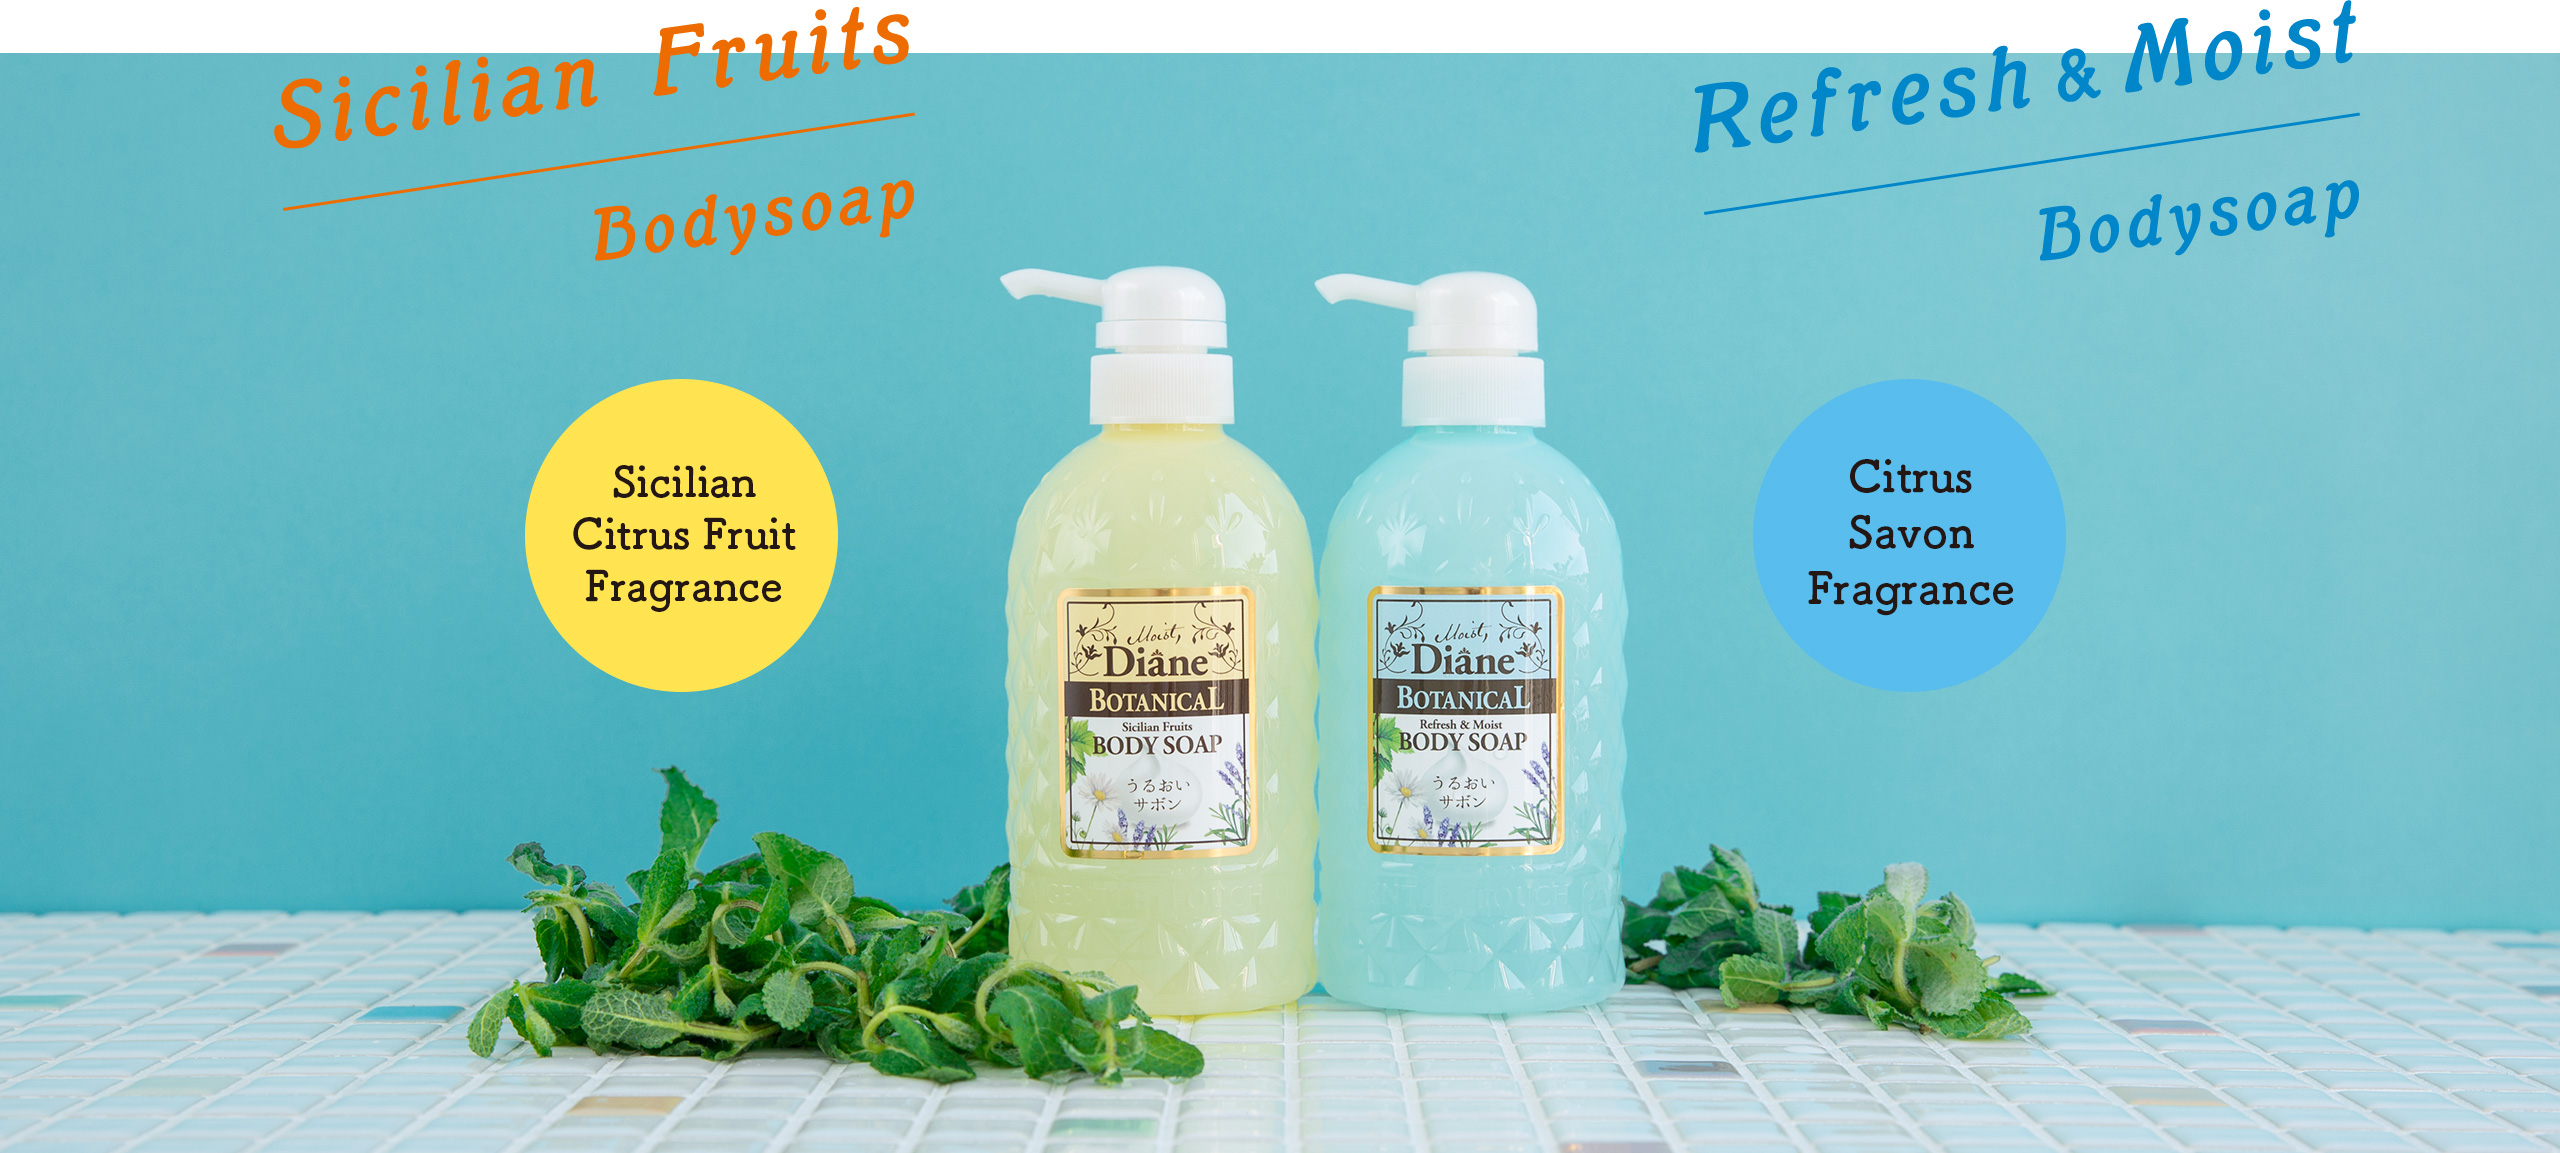 Sicilian Fruits Bodysoap / Refresh & Moist Bodysoap